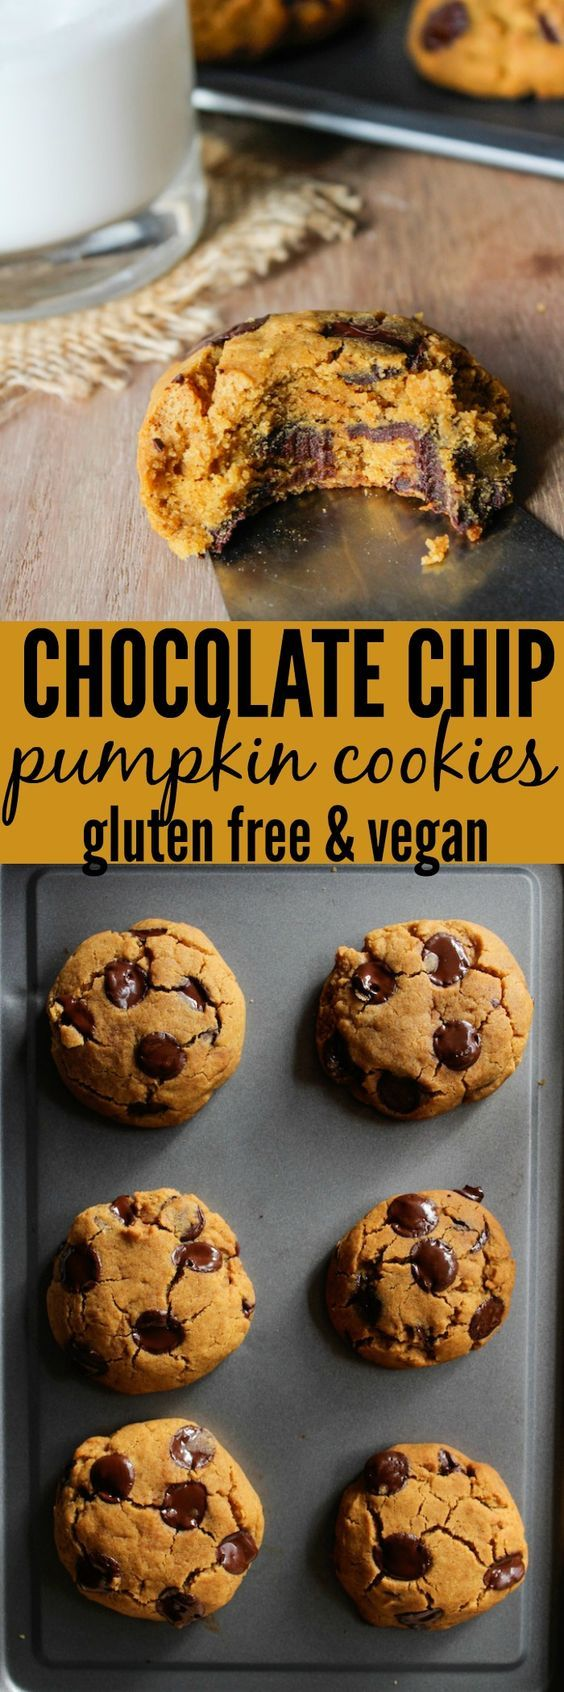 A gluten free, vegan, and low fodmap recipe for Chocolate Chip Pumpkin Cookies @asaucykitchen.com